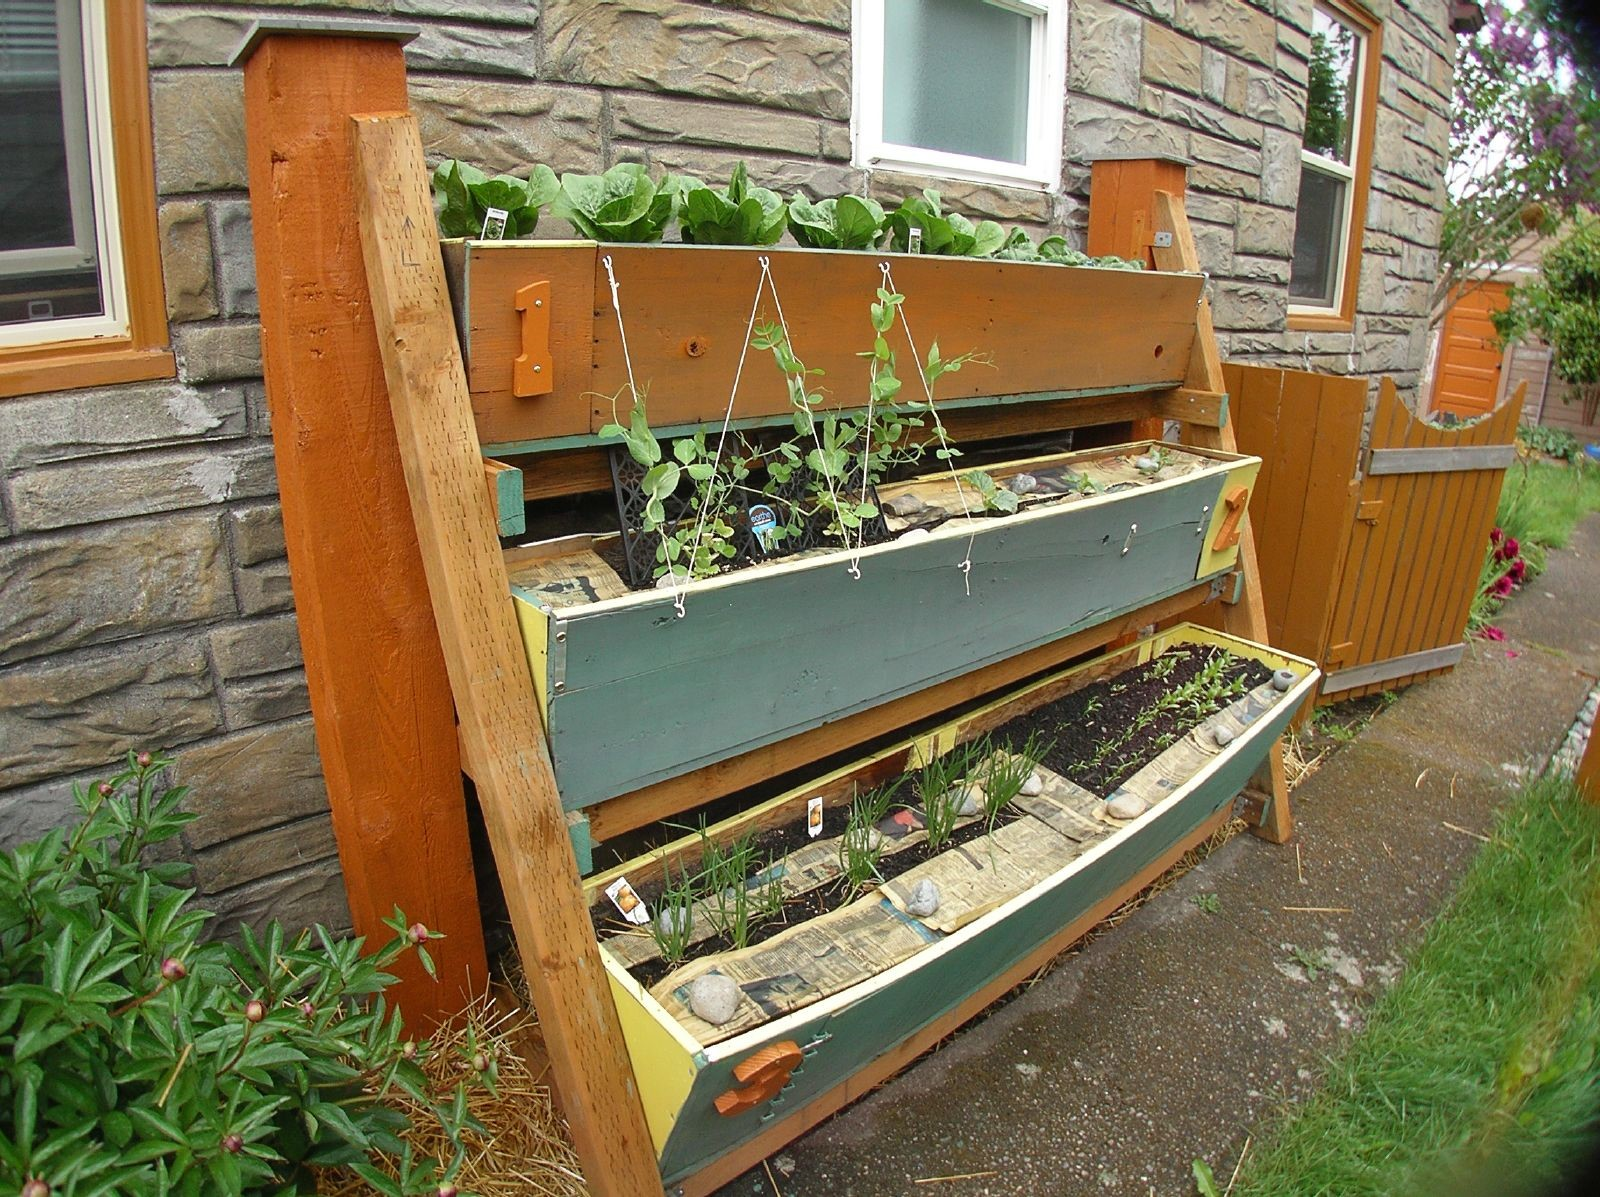 Small space gardening 20 clever ideas to grow in a limited space the self sufficient living - Small space farming image ...